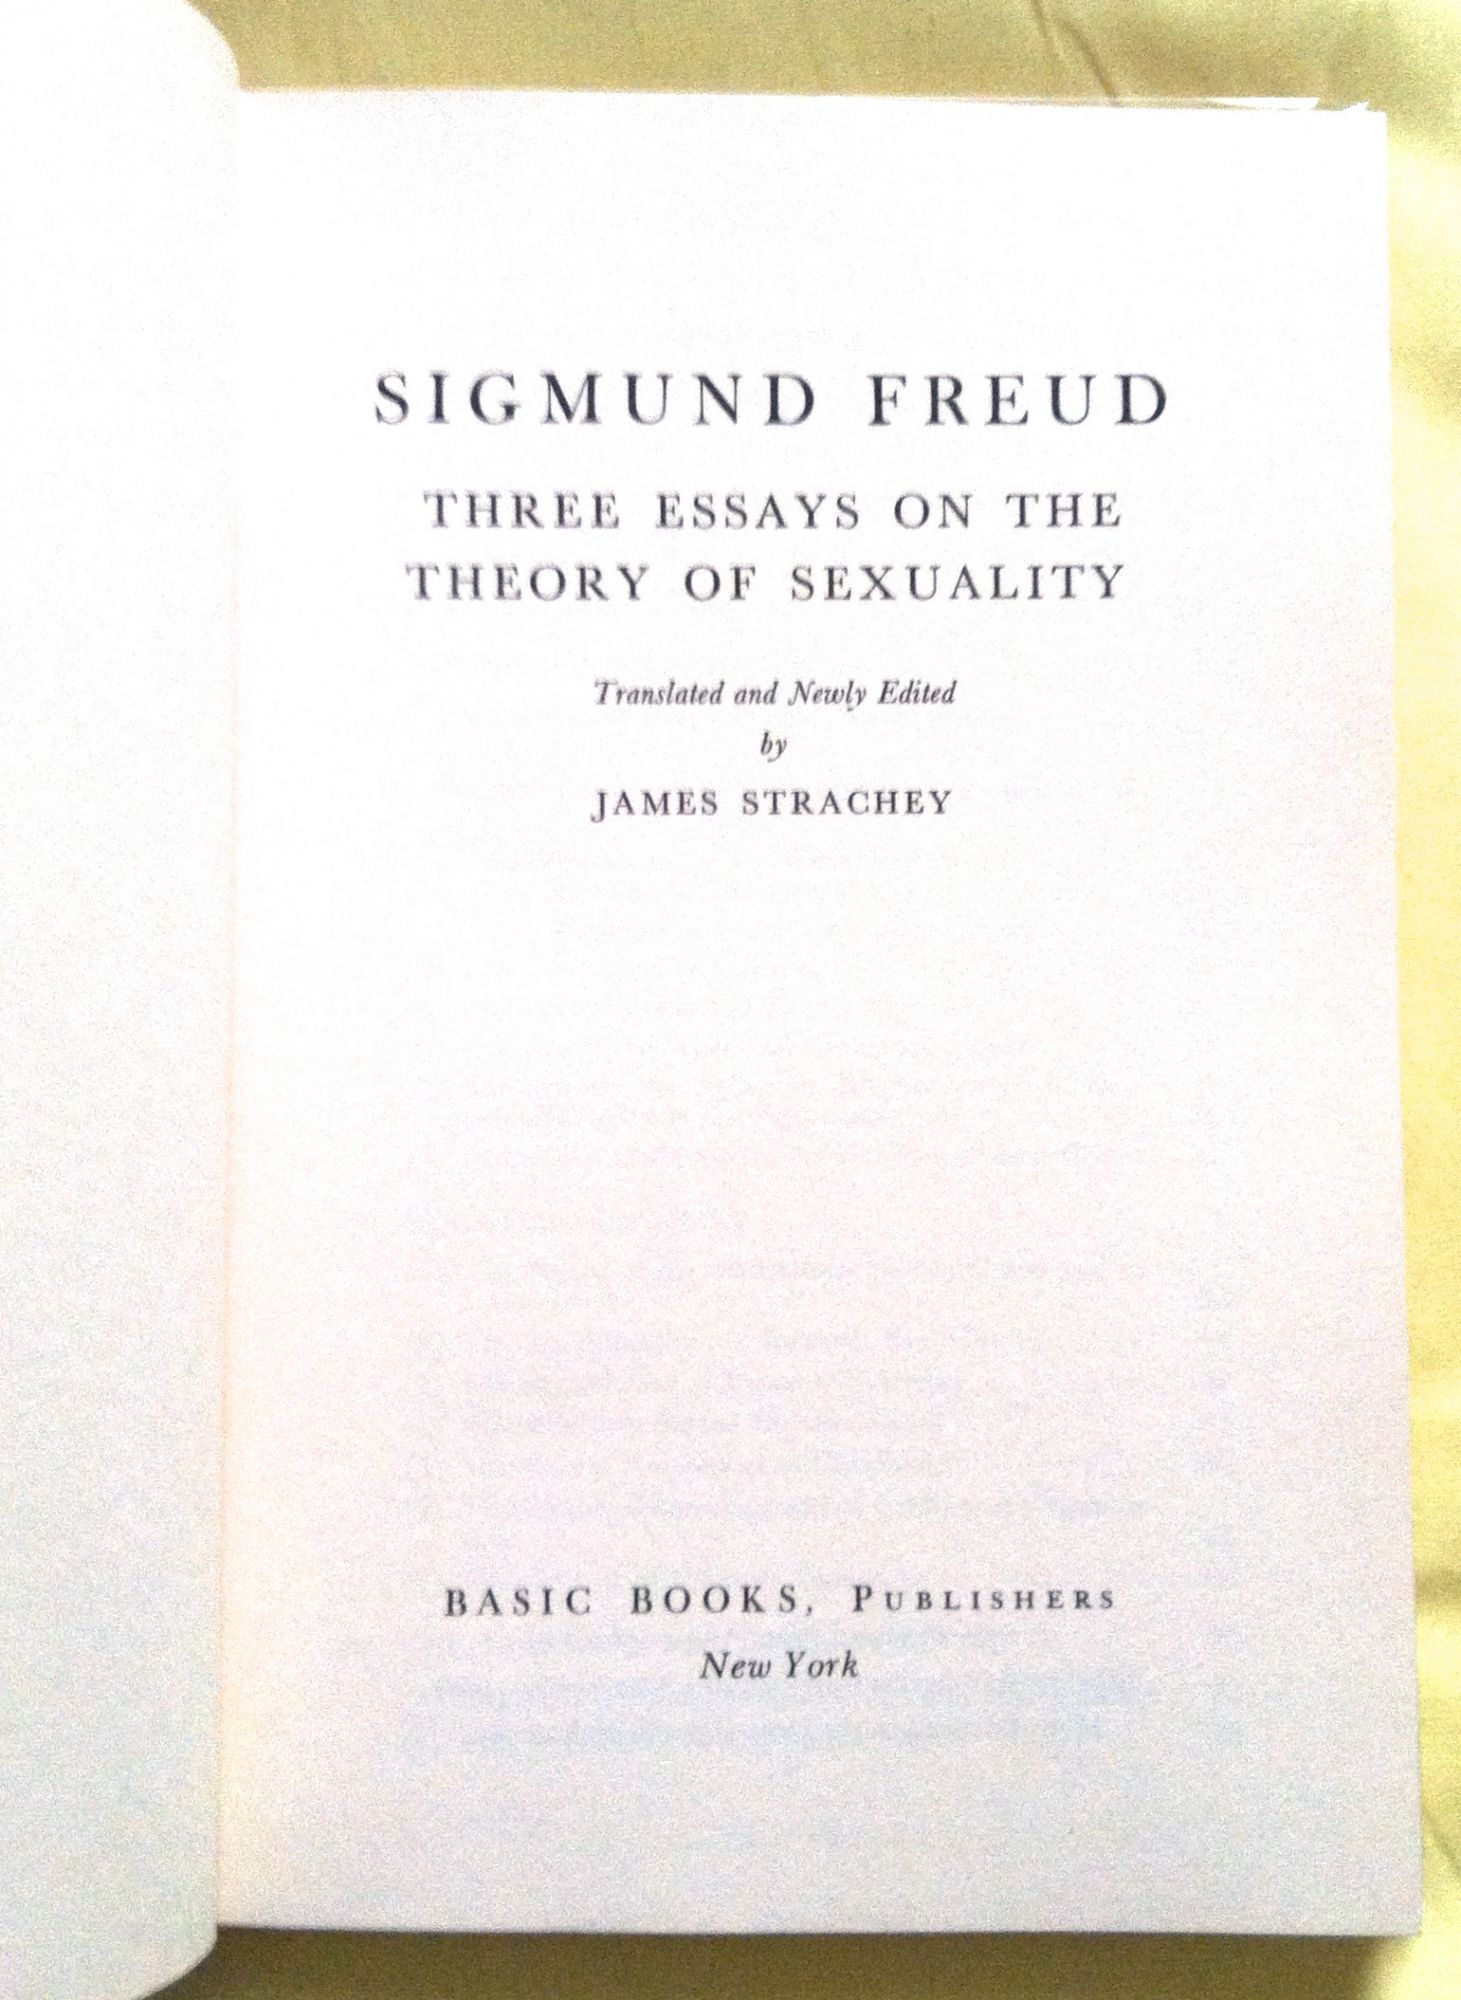 How To Write An Essay In High School Sigmund Freud Three Essays On The Theory Of Sexuality Example Of An Essay Proposal also Proposal Essay Sigmund Freud Three Essays On The Theory Of Sexuality  James  Purpose Of Thesis Statement In An Essay